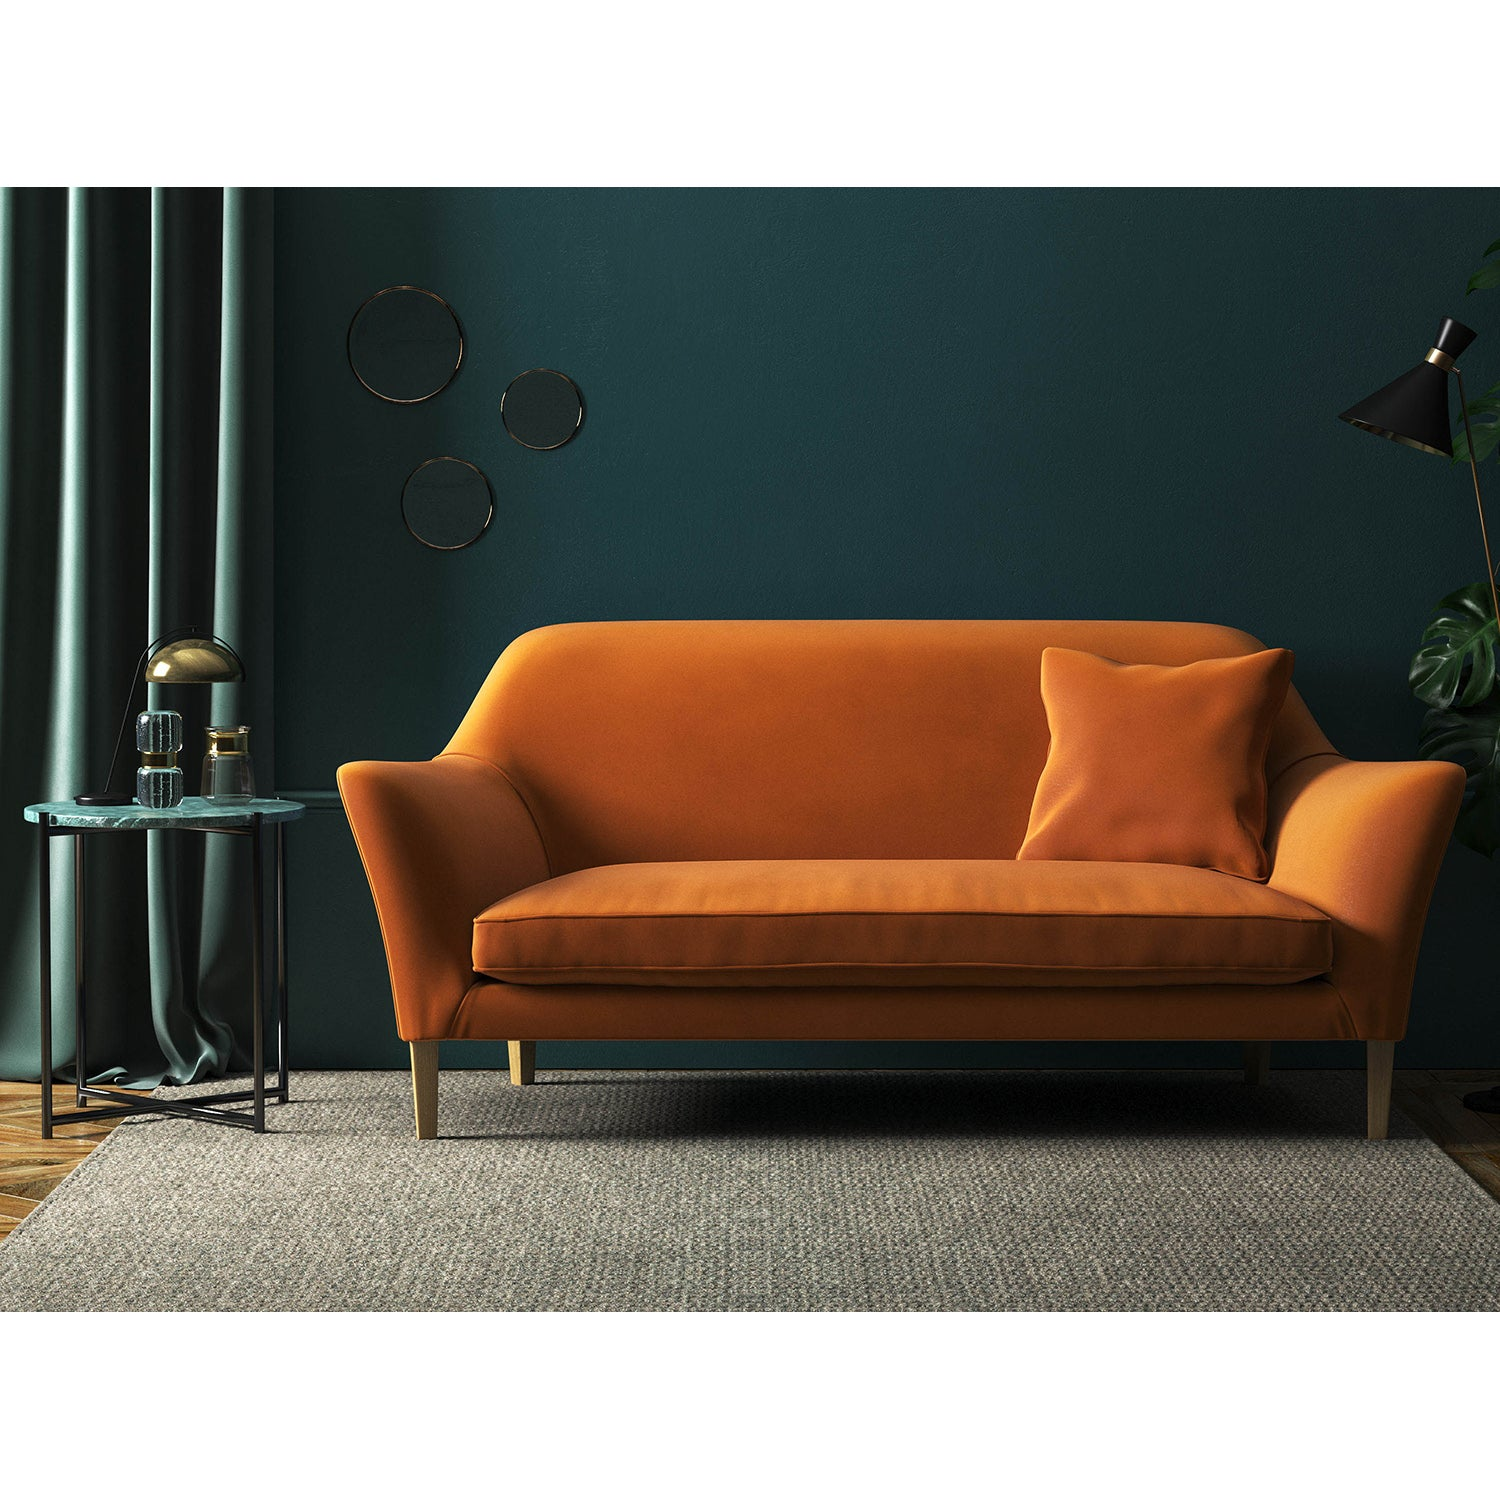 Sofa in a burnt orange plain velvet fabric with a stain resistant finish